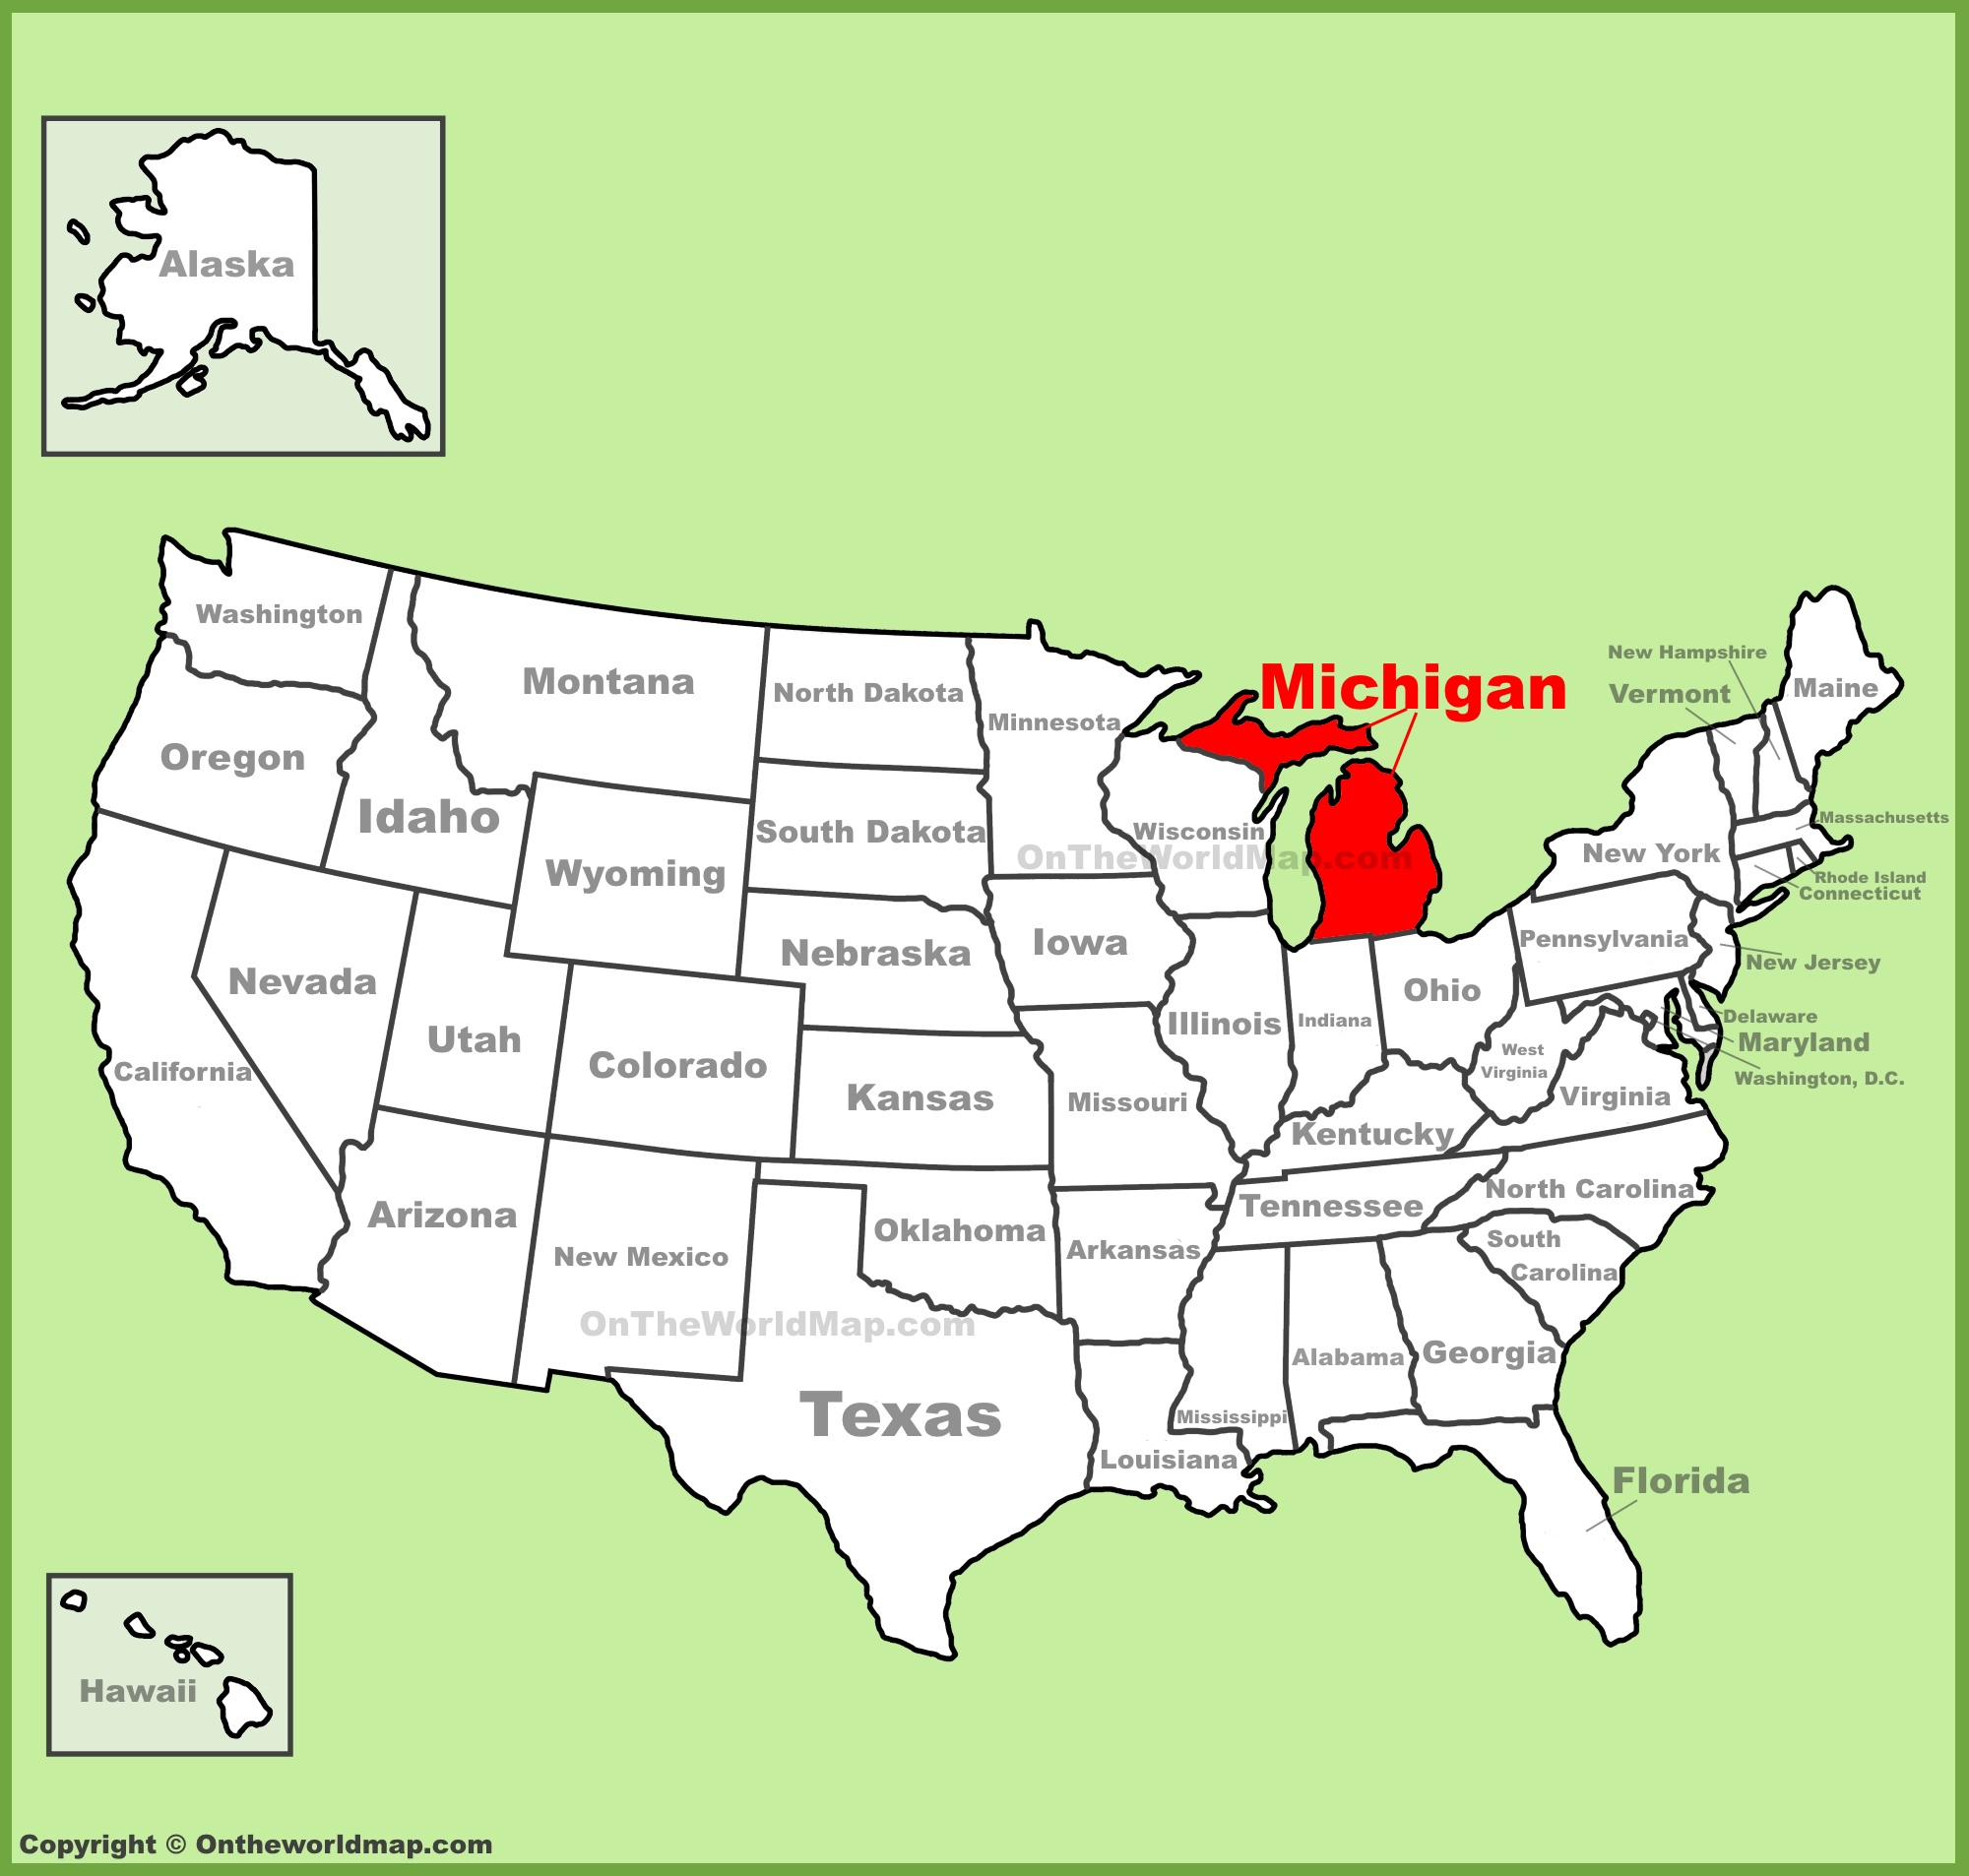 Michigan State Maps USA Maps Of Michigan MI - Us map showing washington dc